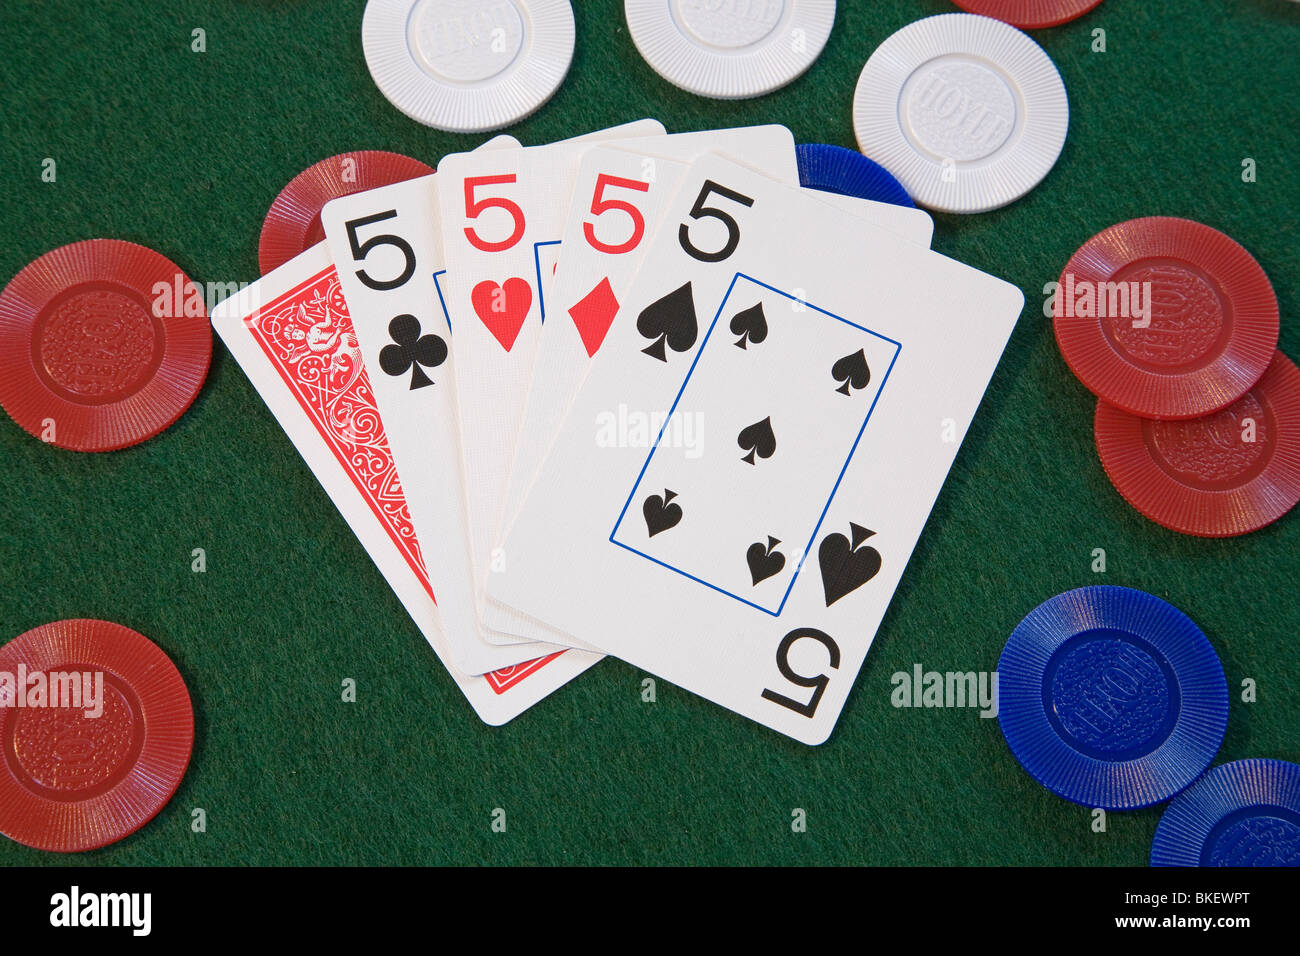 Four Of A Kind On Chips A Hand In Five Card Draw Or Stud